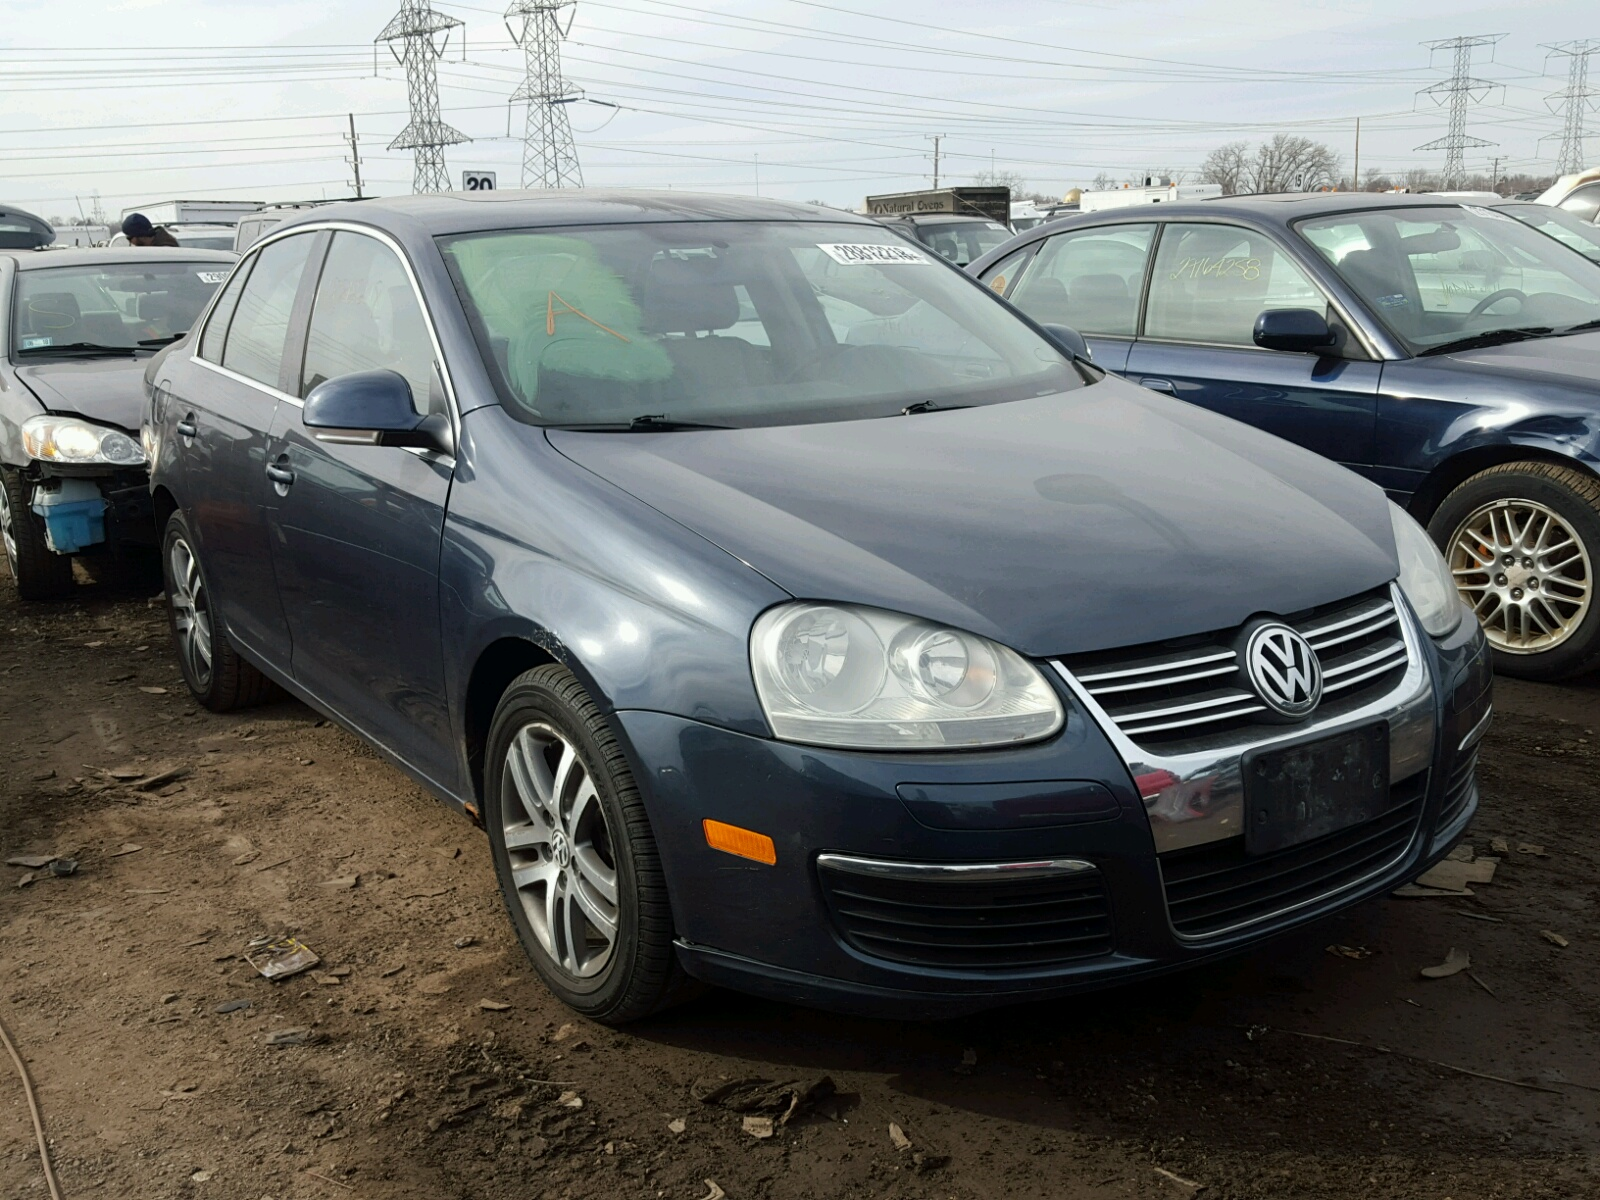 diesel volkswagen reach vw htm seekers cars details me ready page jetta this thousands for listed on have your email thumbnail here to sale car tdi can buy and you pic of